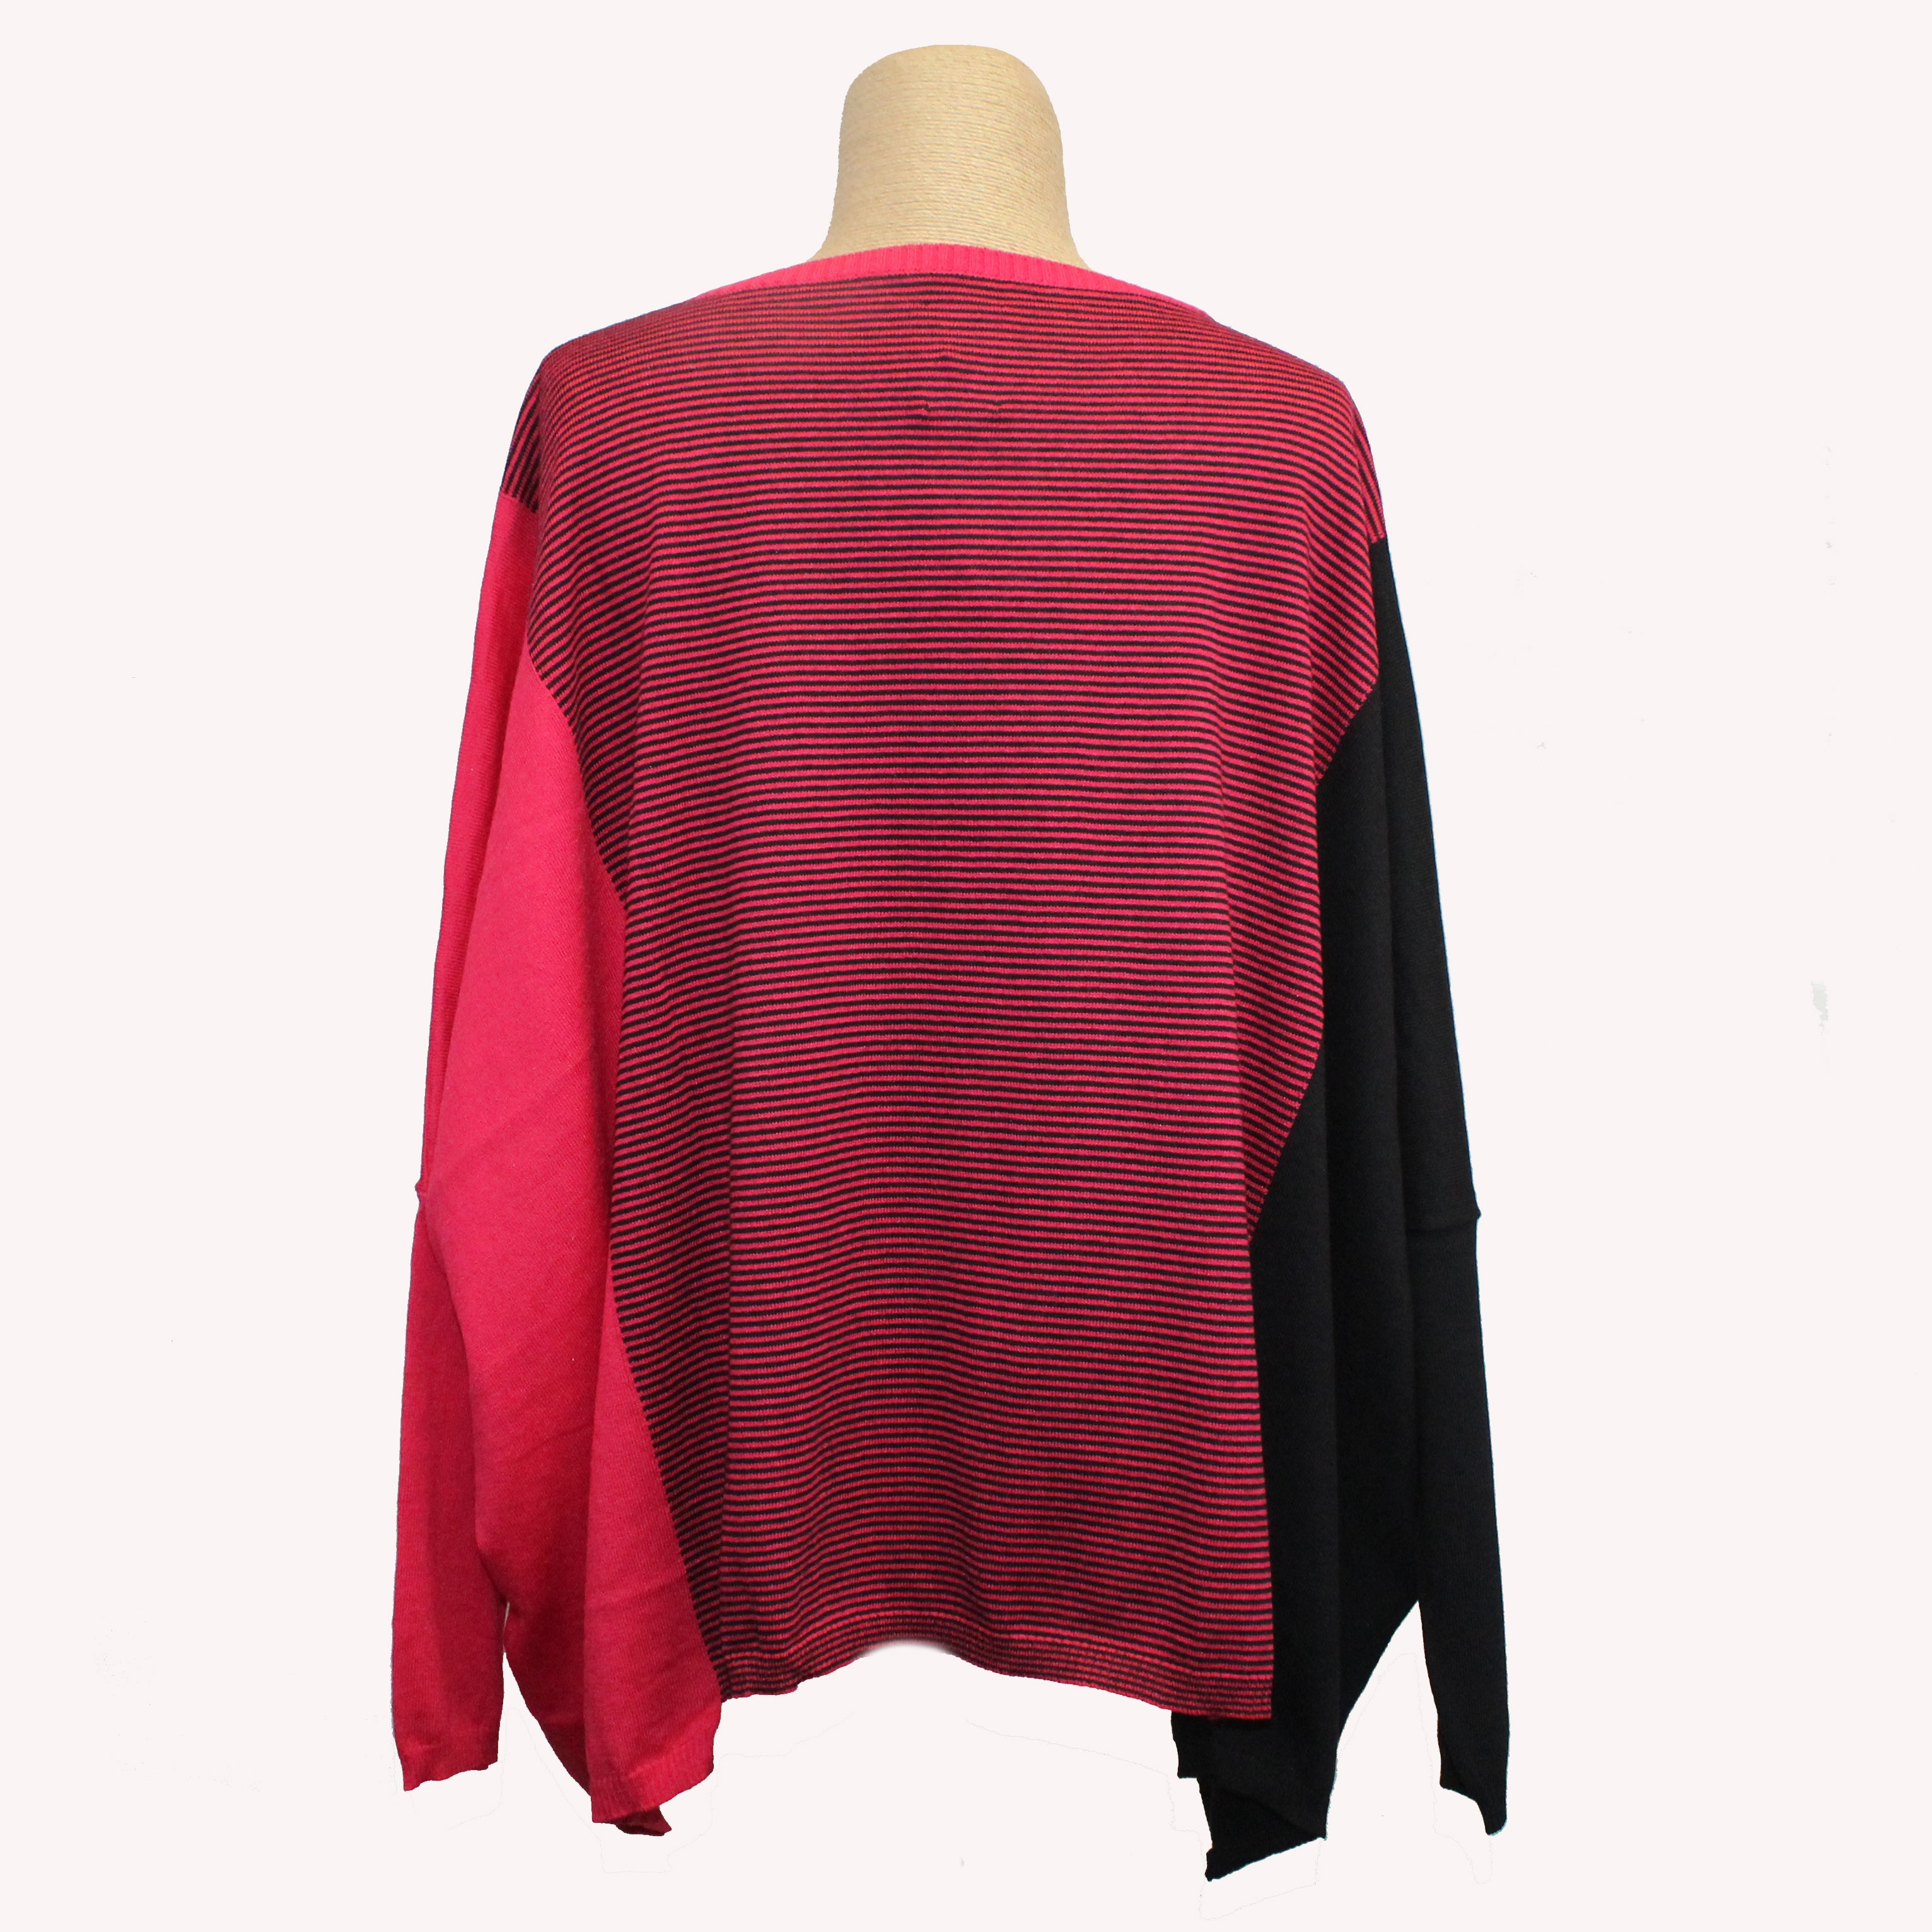 Kim Bernardin Sweater, Round Neck, Red/Black, OS (Fits S-L)